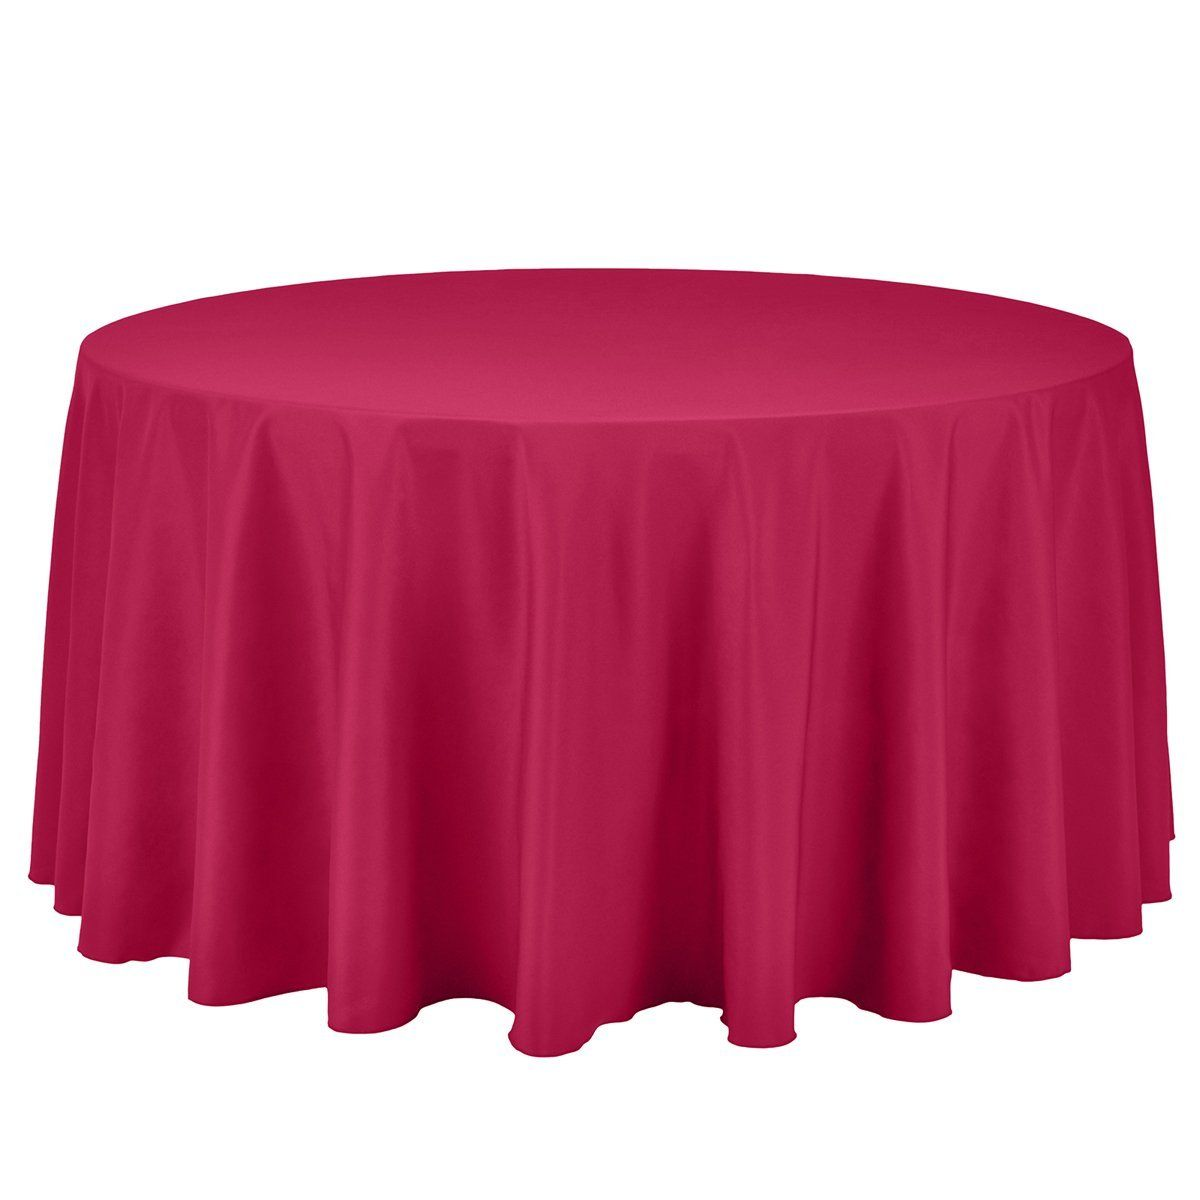 Remedios 108 Inch Round Polyester Tablecloth For Wedding